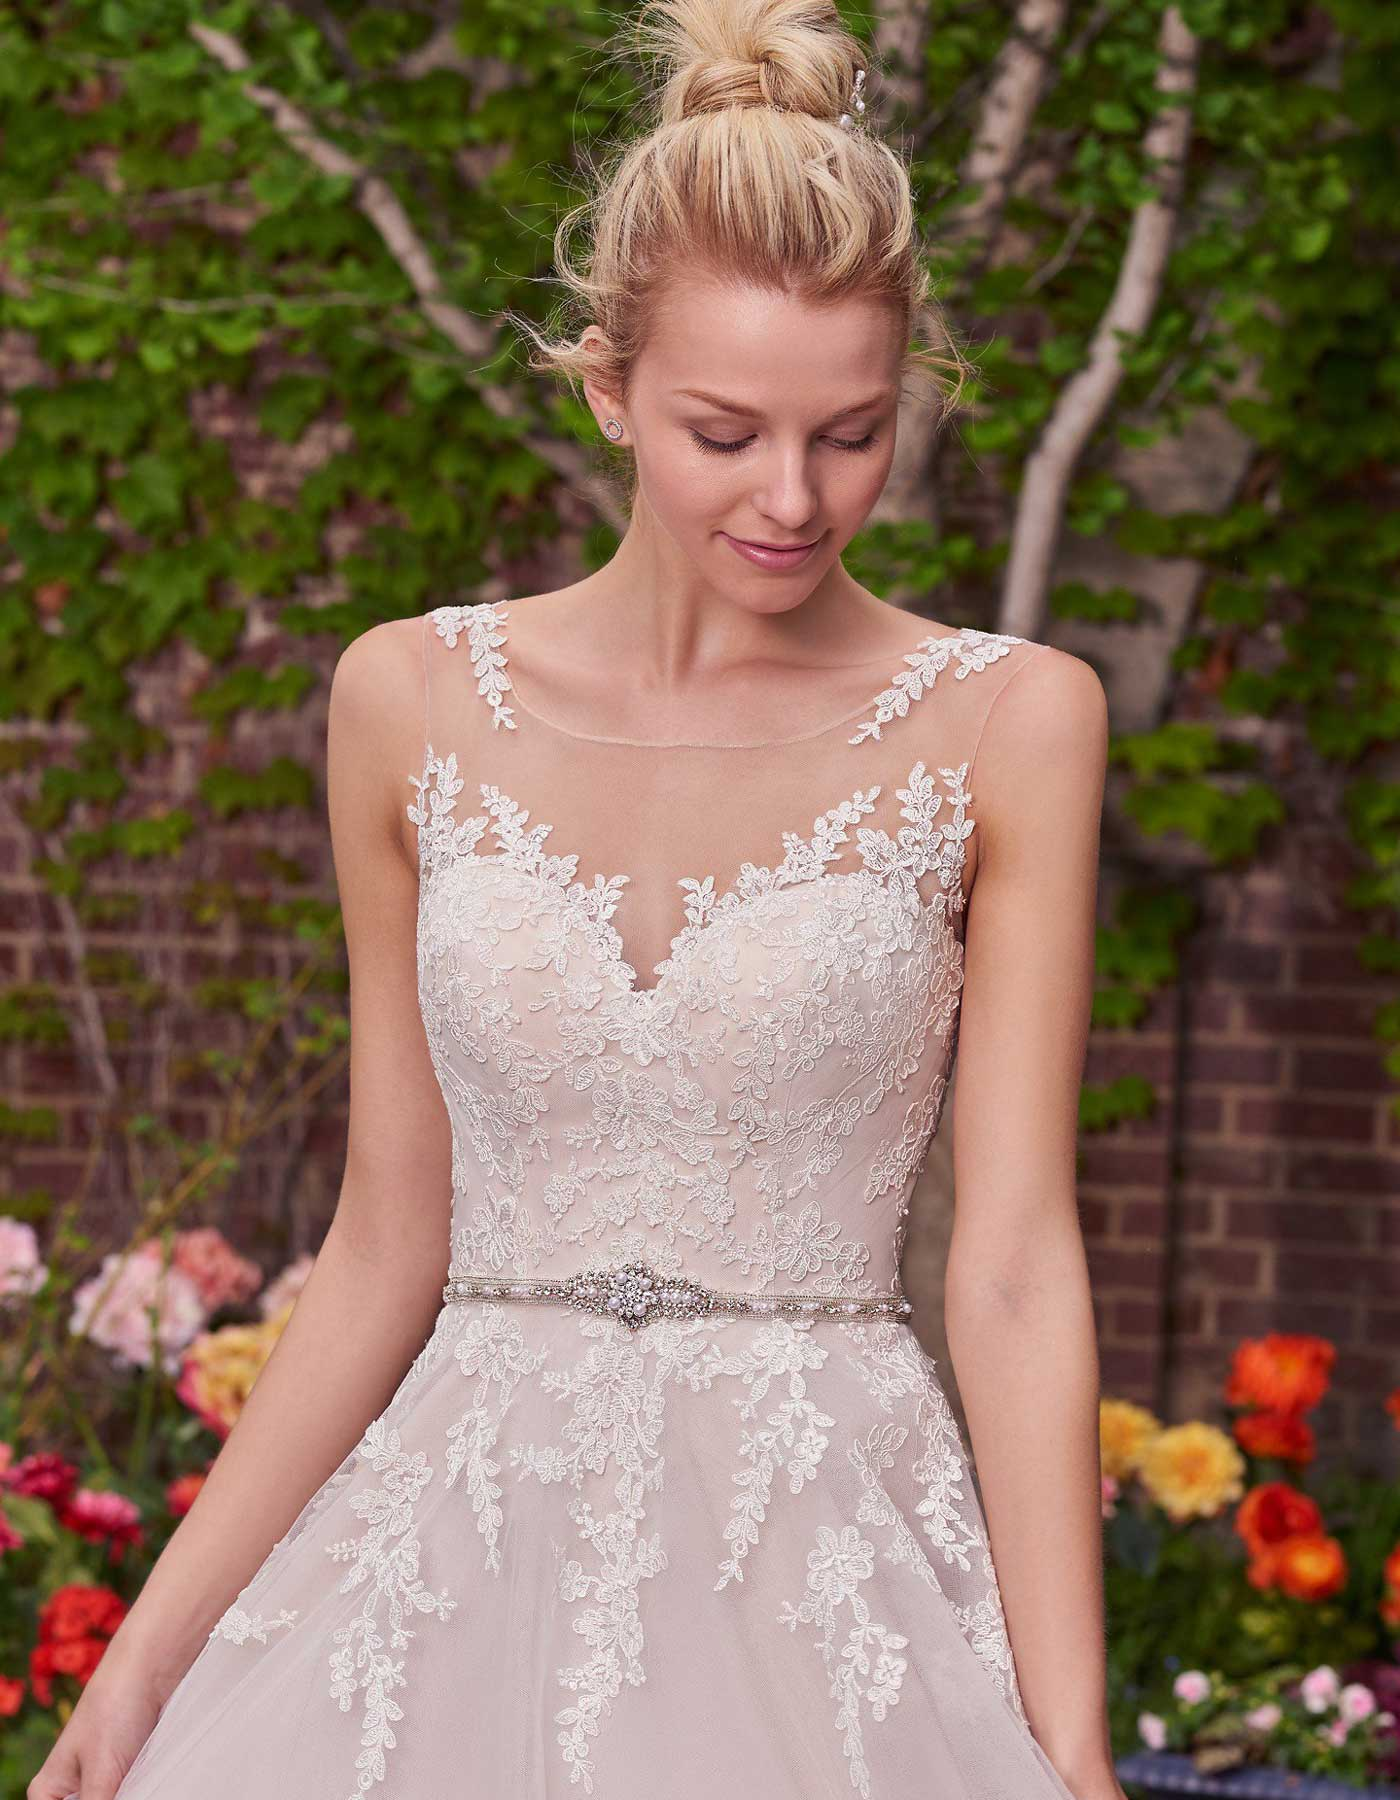 Olivia By Rebecca Ingram Maggie Sottero A Lace Ball Gown